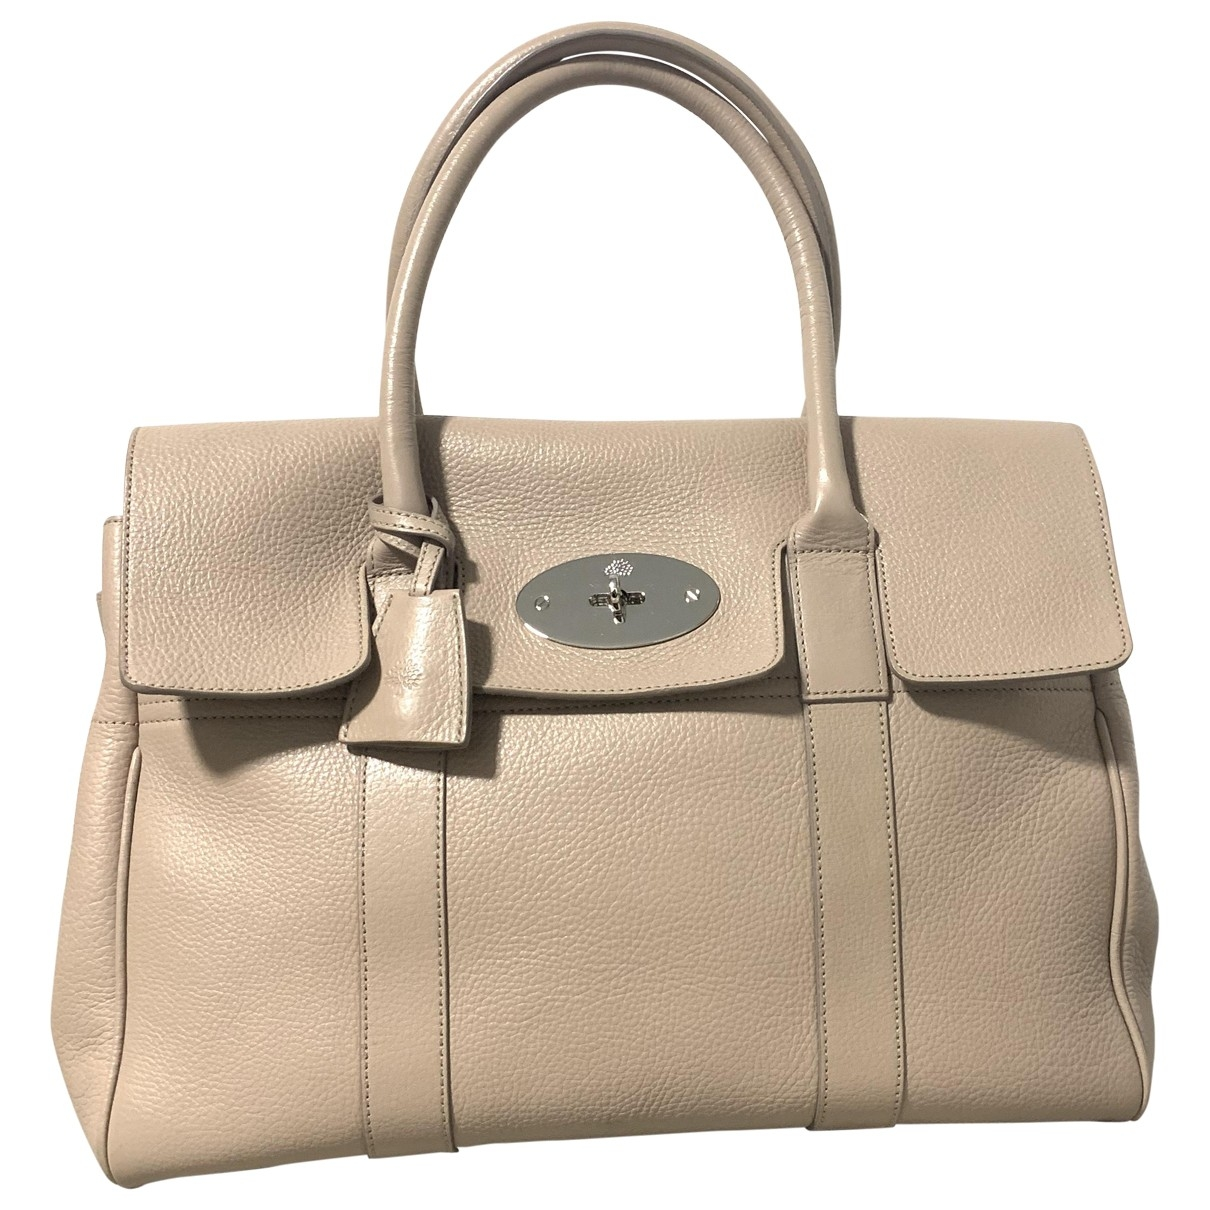 Mulberry - Sac a main Bayswater pour femme en cuir - rose